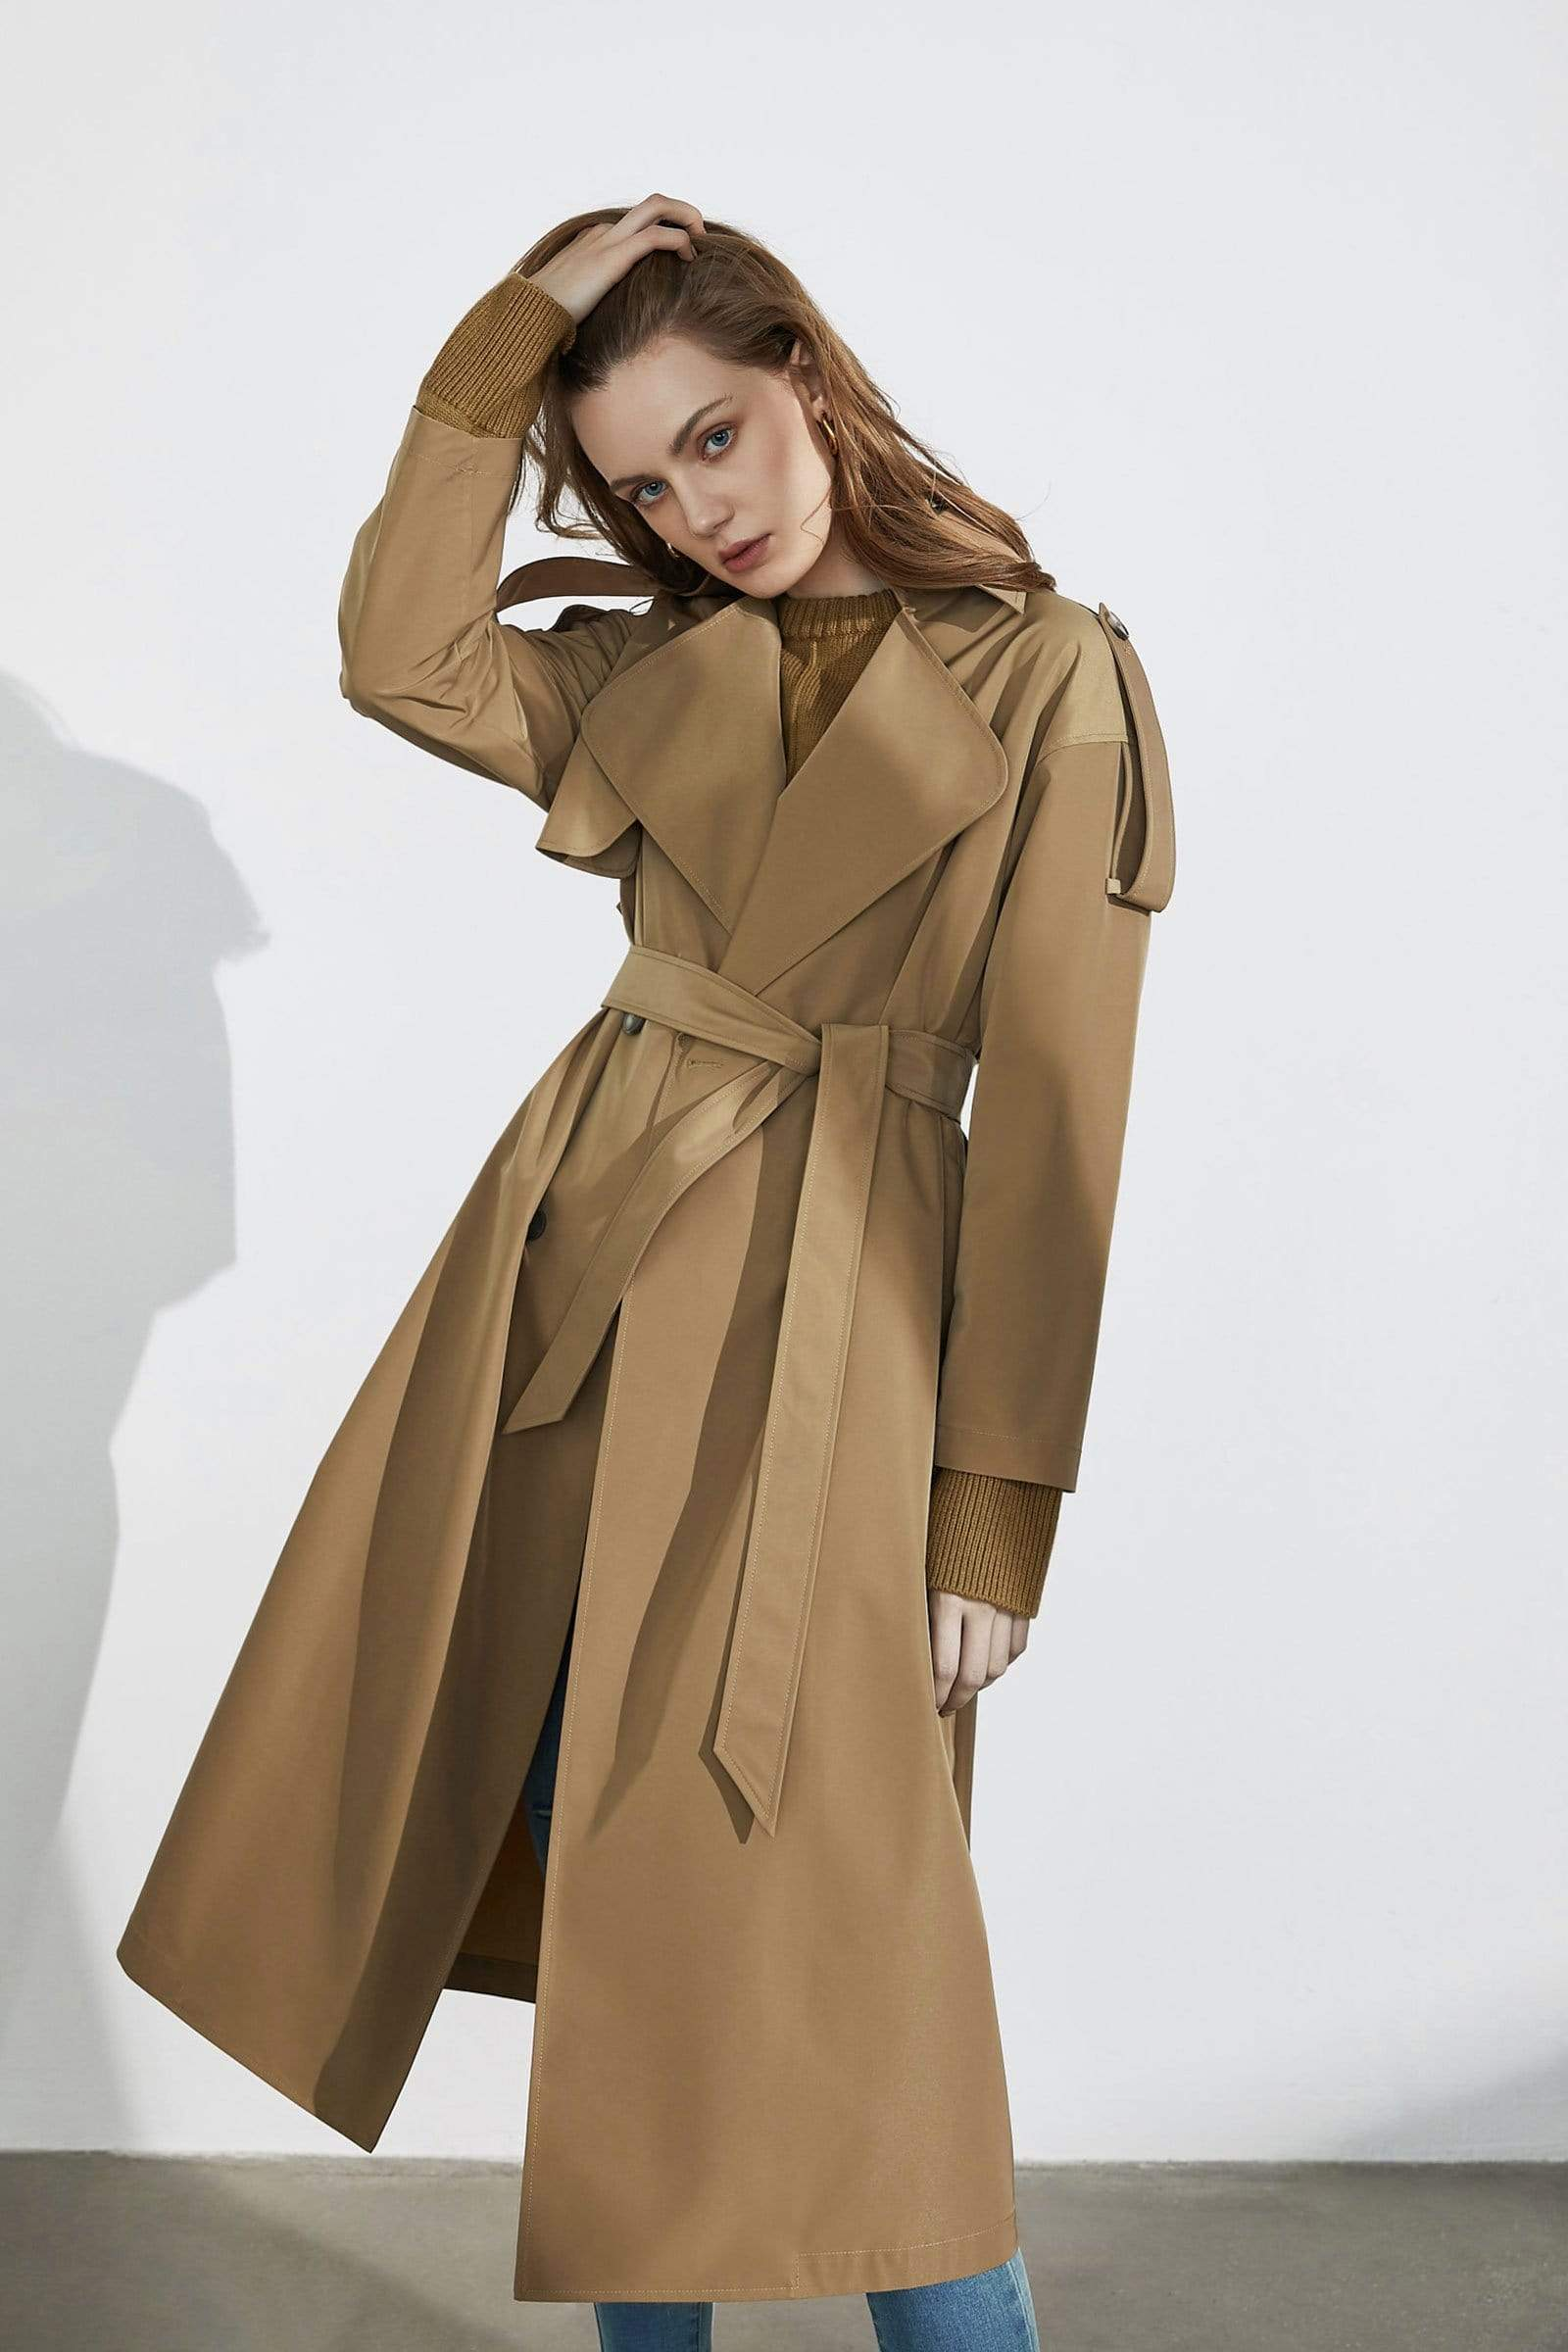 Mixer Brown Trench Coat for Women by J.ING